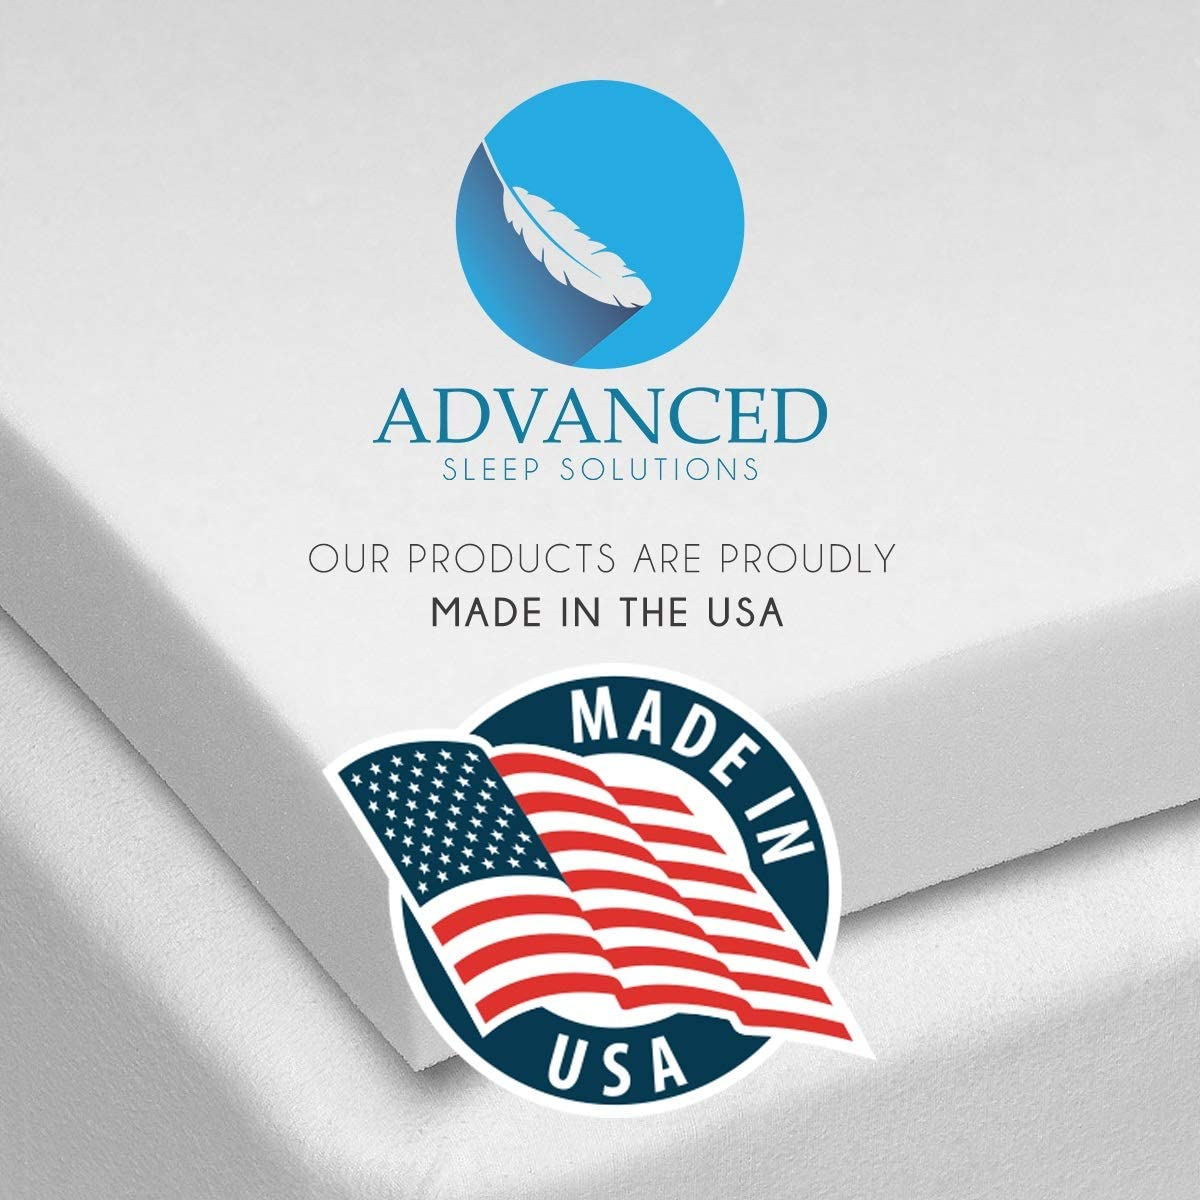 3 Inch Memory Foam Mattress Topper Twin, CertiPur-US Approved Twin Size Memory Foam Mattress Topper, Comfortable, Medium Soft Mattress Toppers for Twin Bed, Made in The USA – 3 Year Warranty